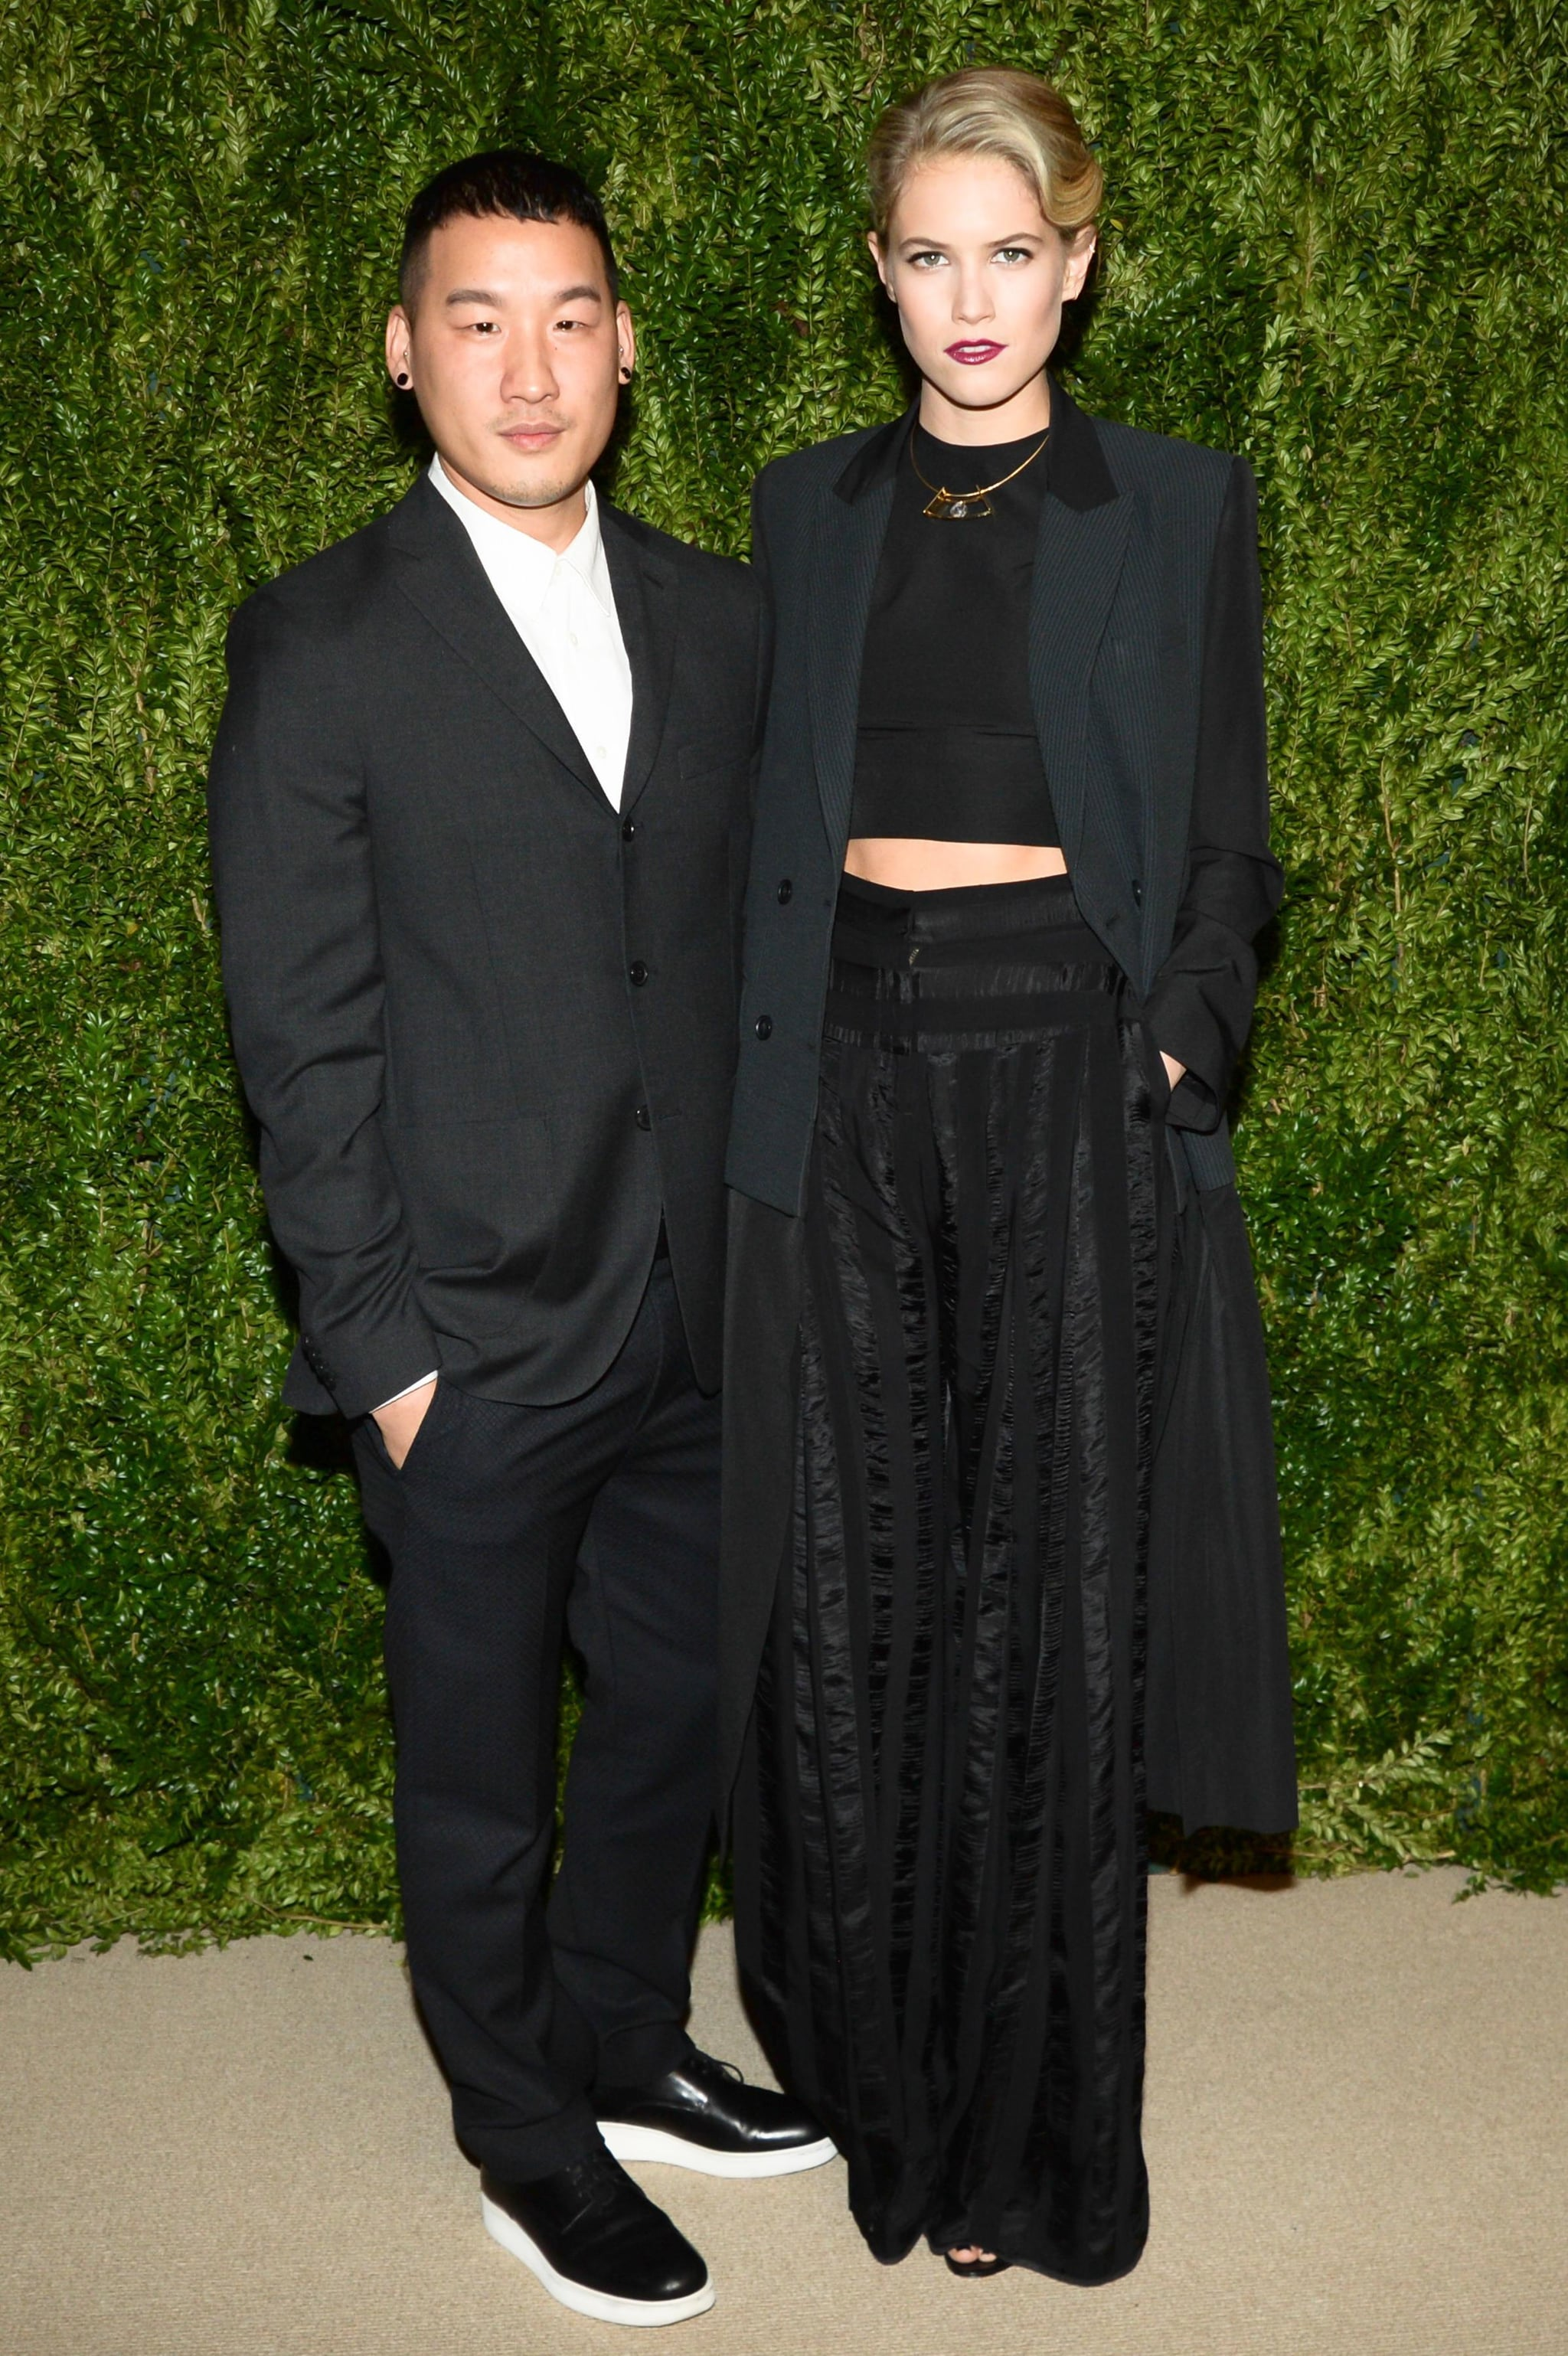 Cody Horn, with designer Richard Chai, wearing a look from the designer's Spring 2014 collection and jewelry from Yael Sonia.